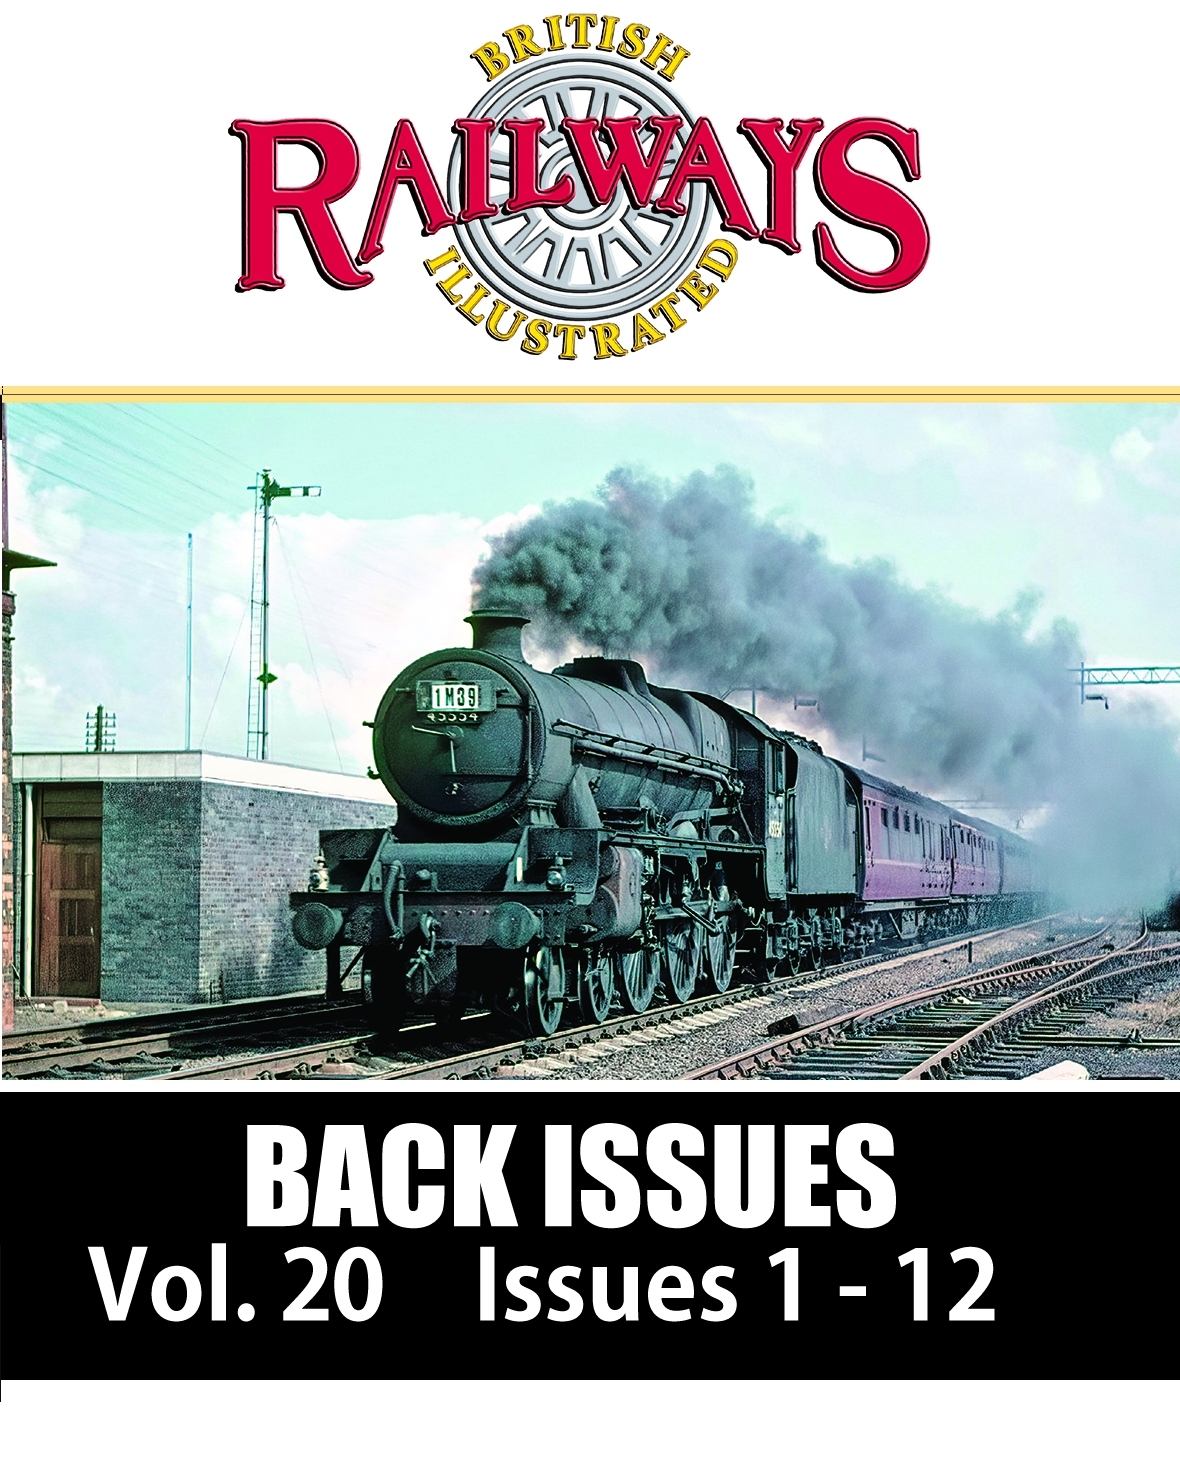 Guideline Publications British Railways Illustrated - BACK ISSUES vol 20